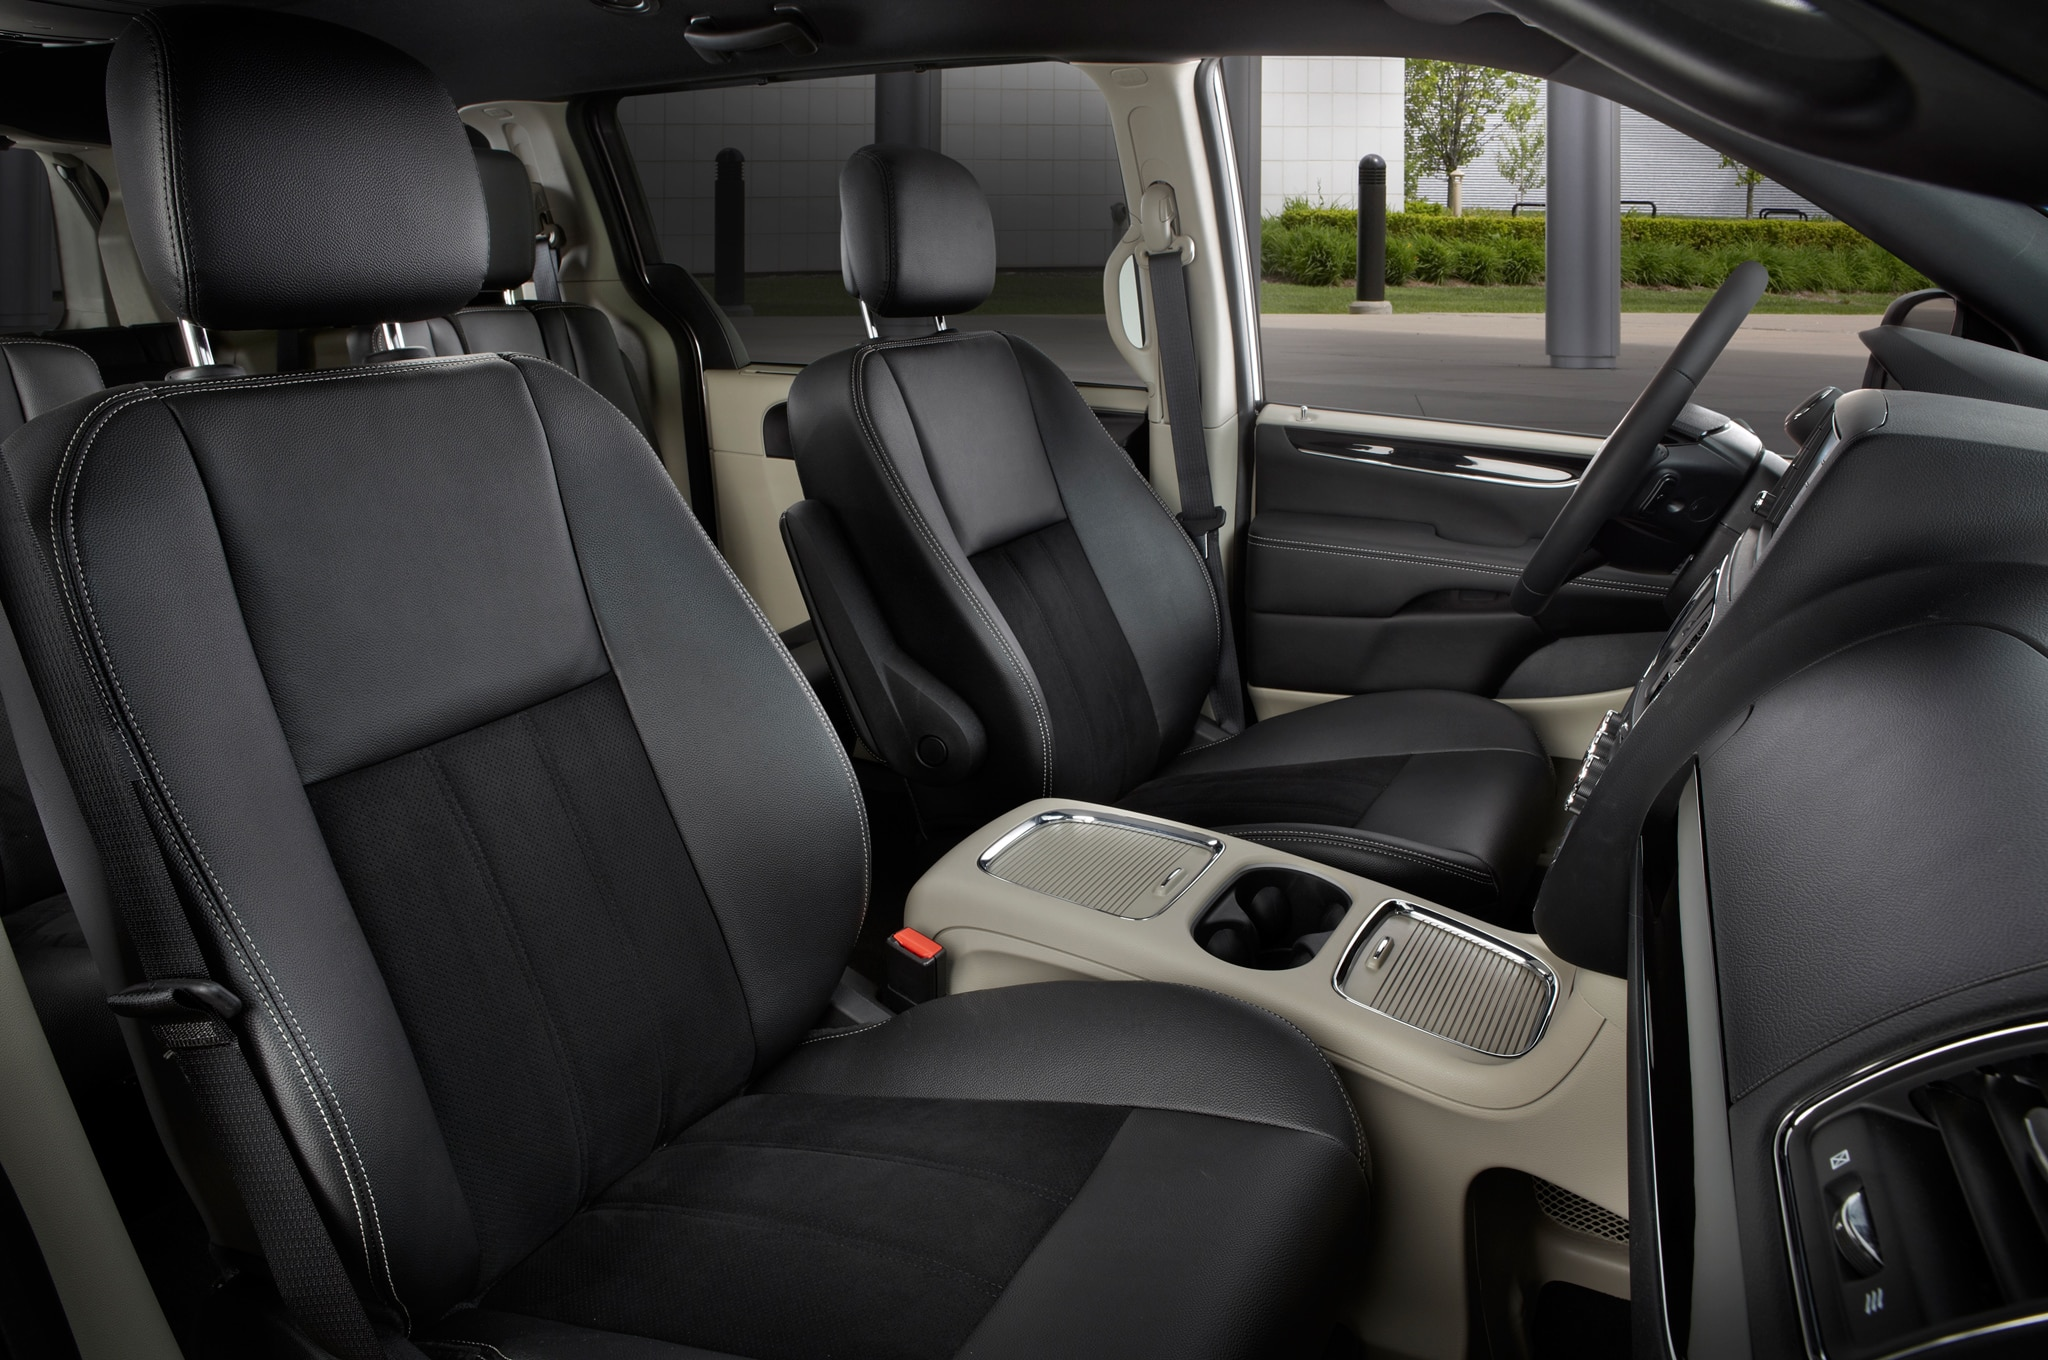 2014 Chrysler Town & Country, Dodge Grand Caravan Receive 30th Anniversary Packages